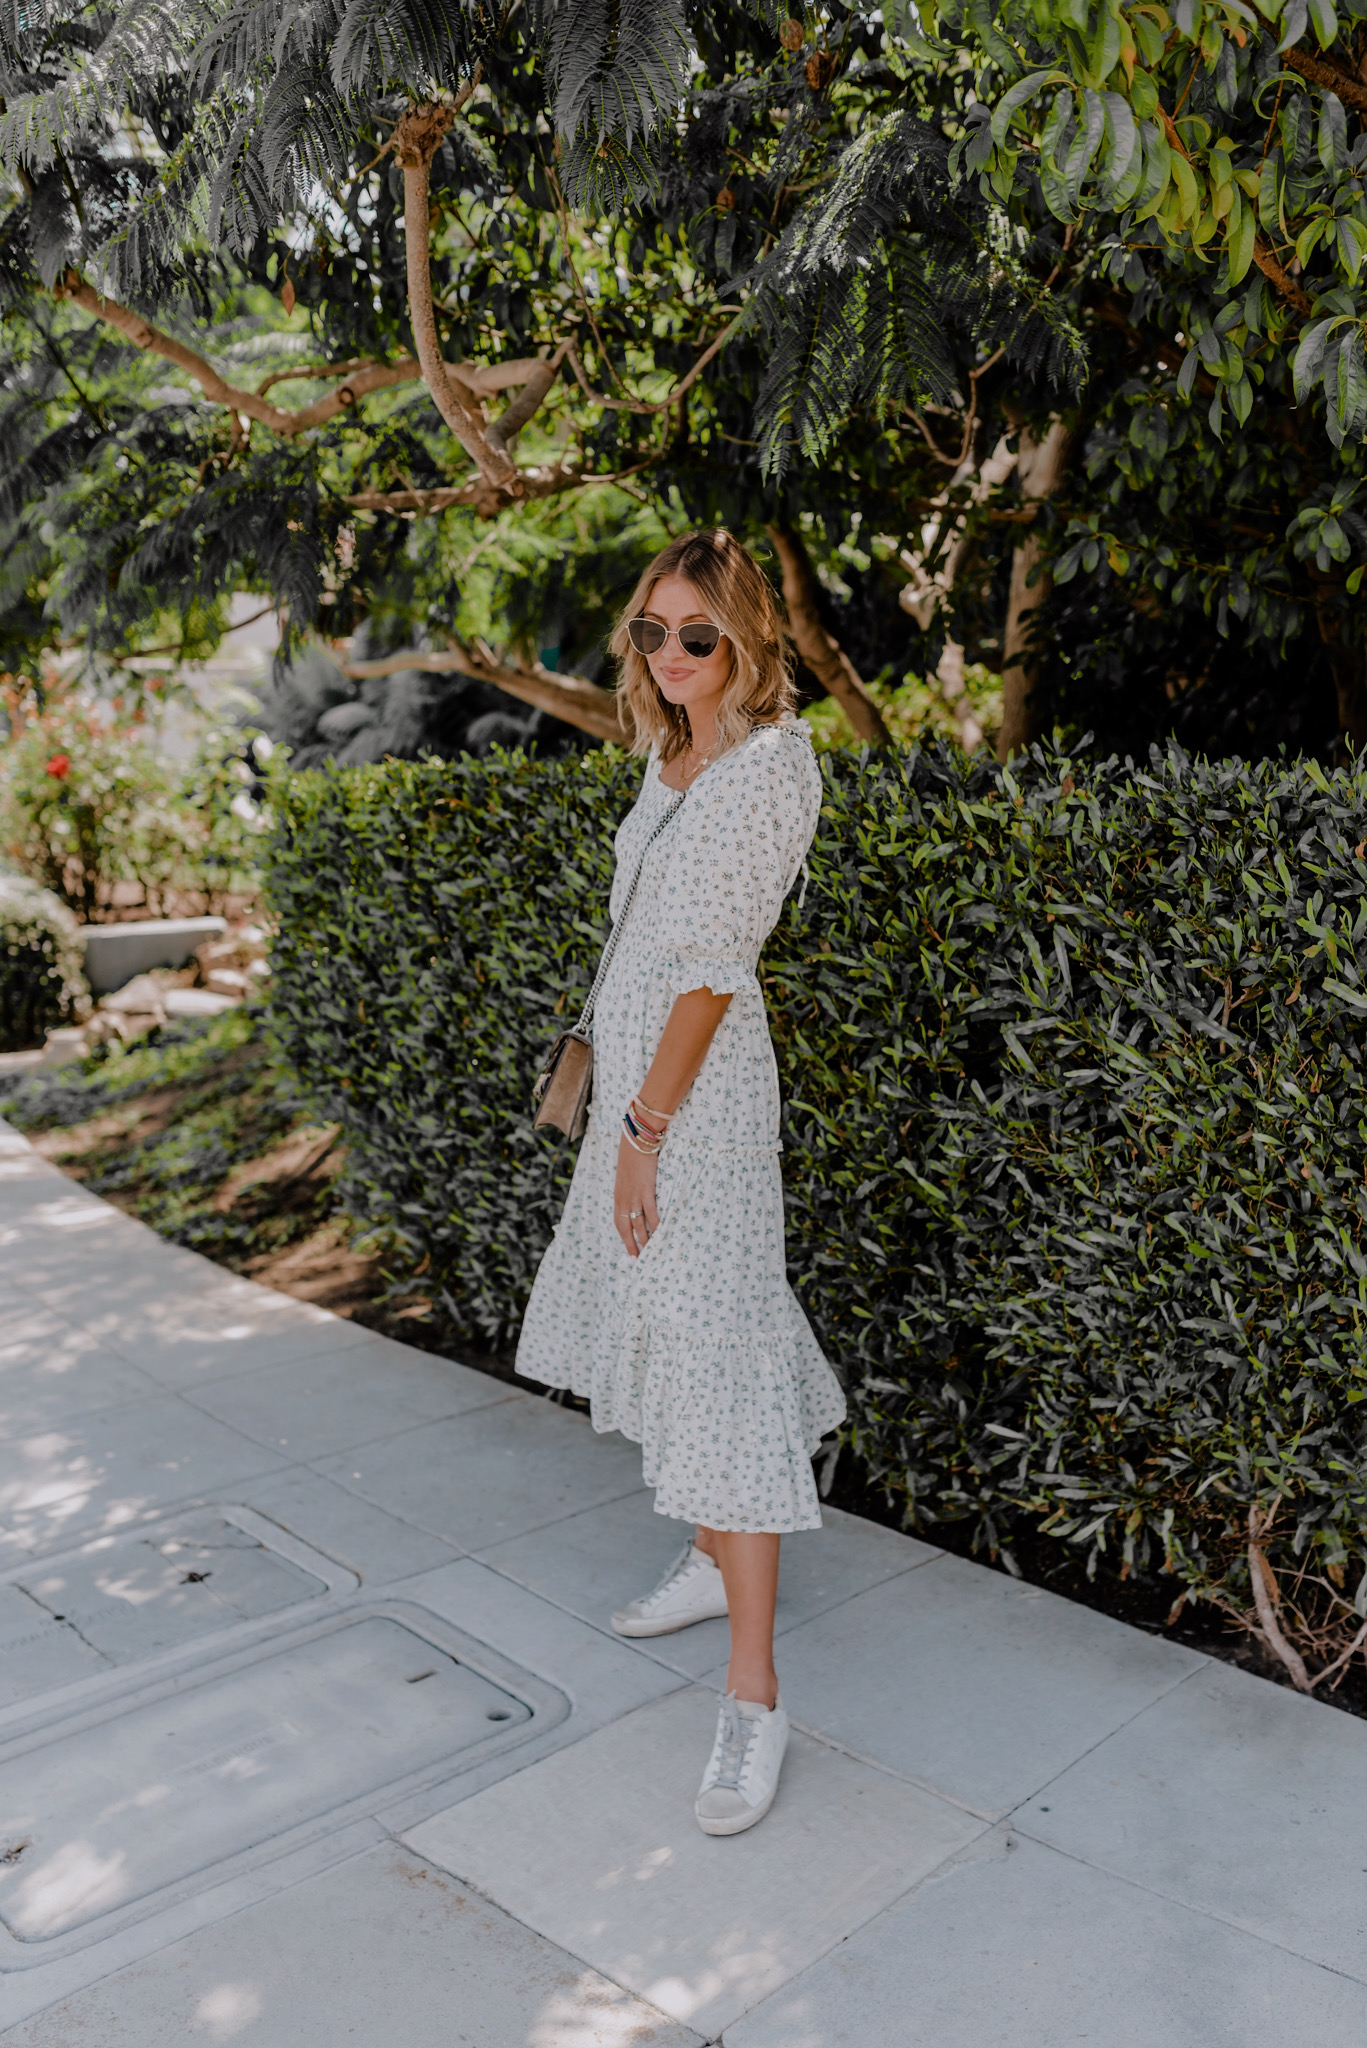 Amazon Favorites by popular San Diego life and style blog, Navy Grace: image of a woman standing outside and wearing a Ivy City Co. Madeline Dress, Golden Goose Superstar Sneakers, Le Specs Echo Sunglasses, and carrying a Gucci Dionysus GG Supreme mini bag.